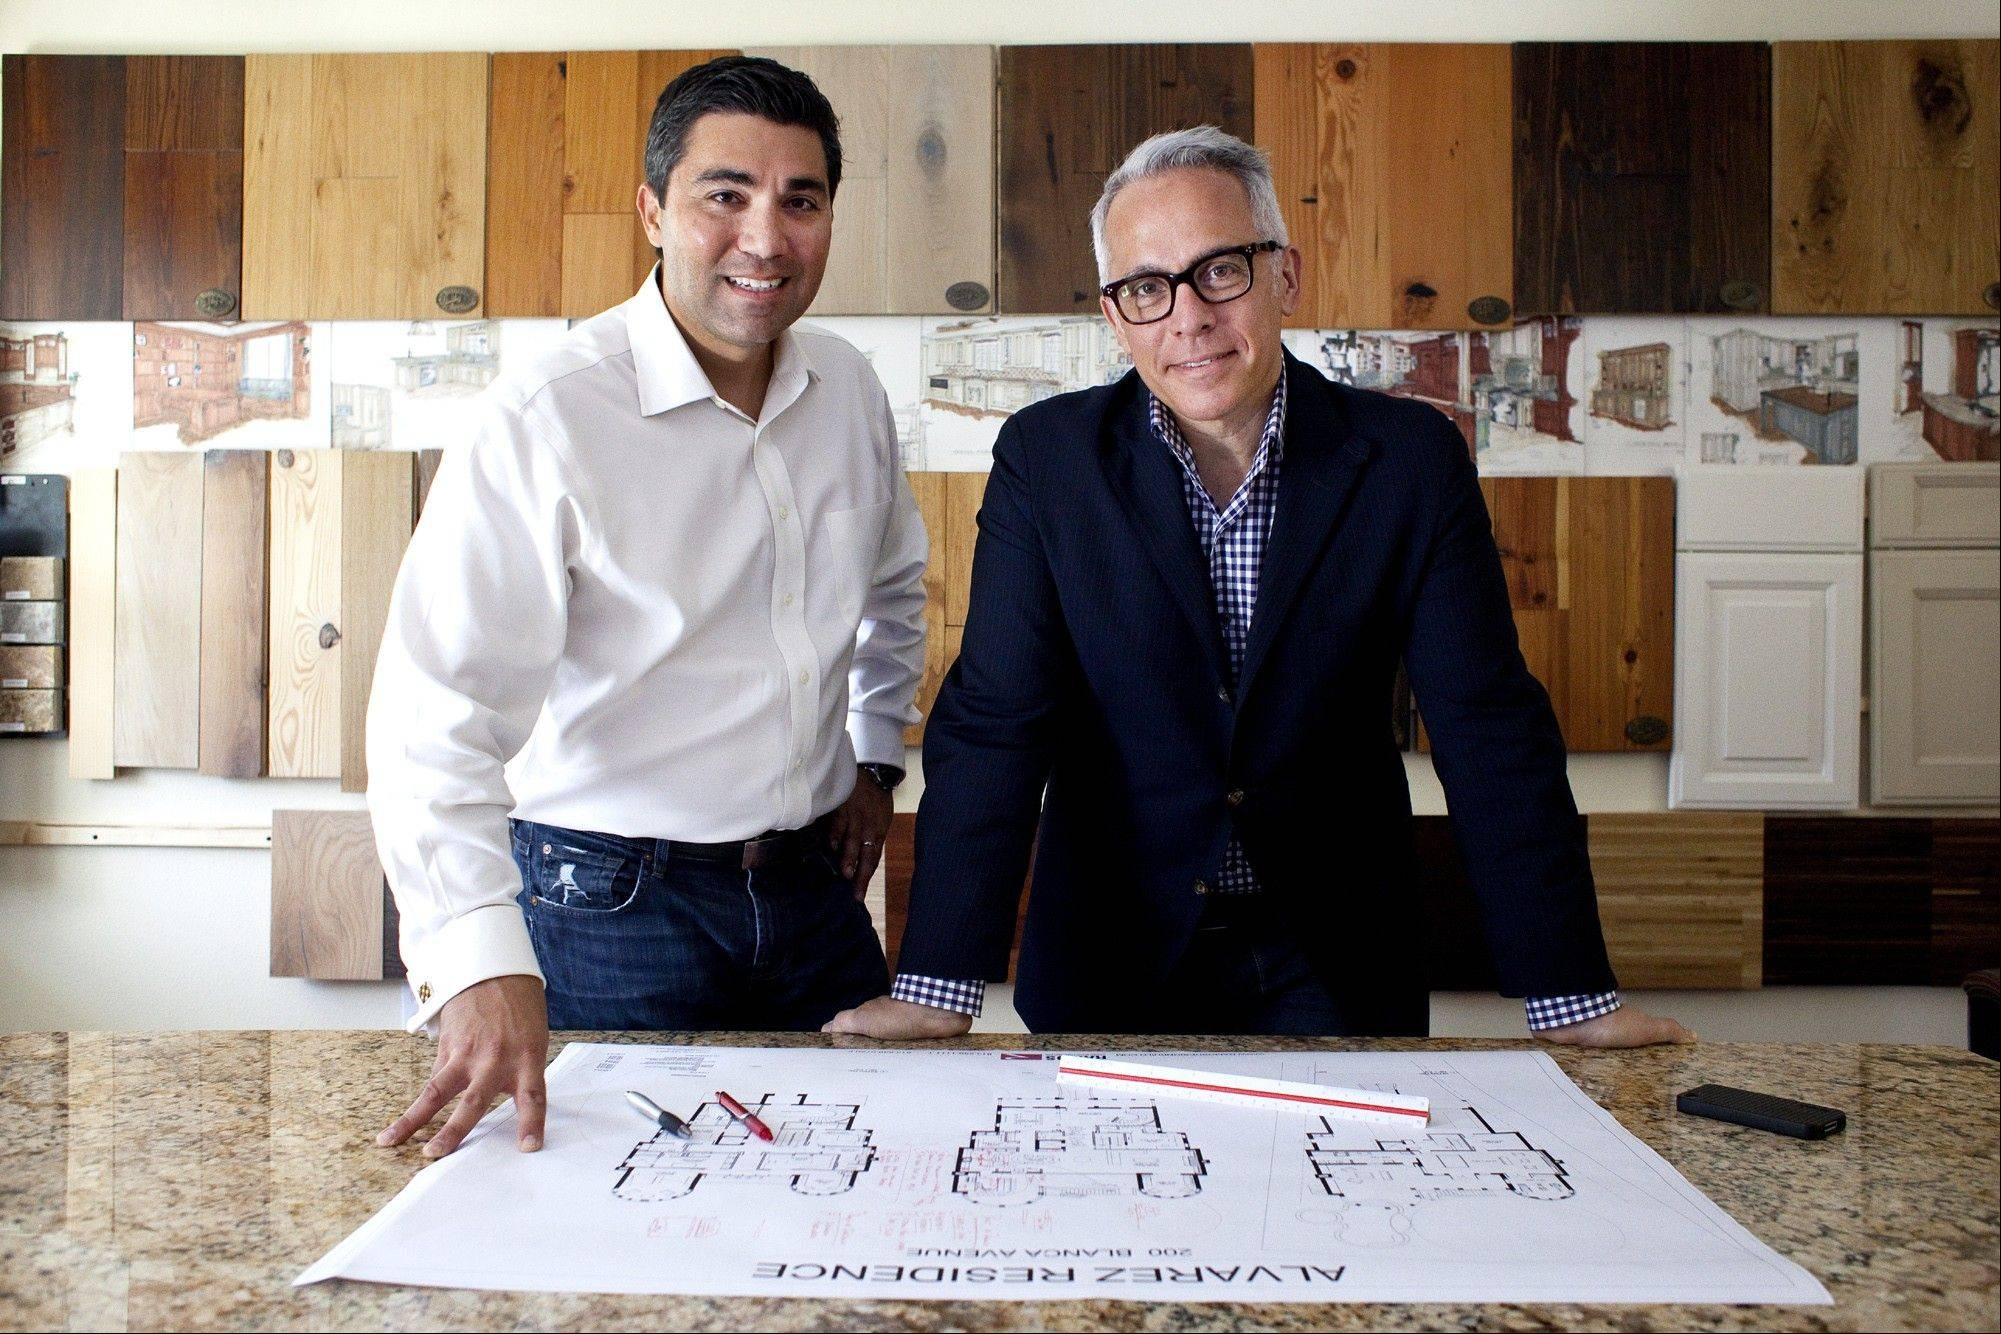 Celebrity chef Geoffrey Zakarian, right, and local developer James Ramos have teamed up to design functional, usable kitchen spaces.